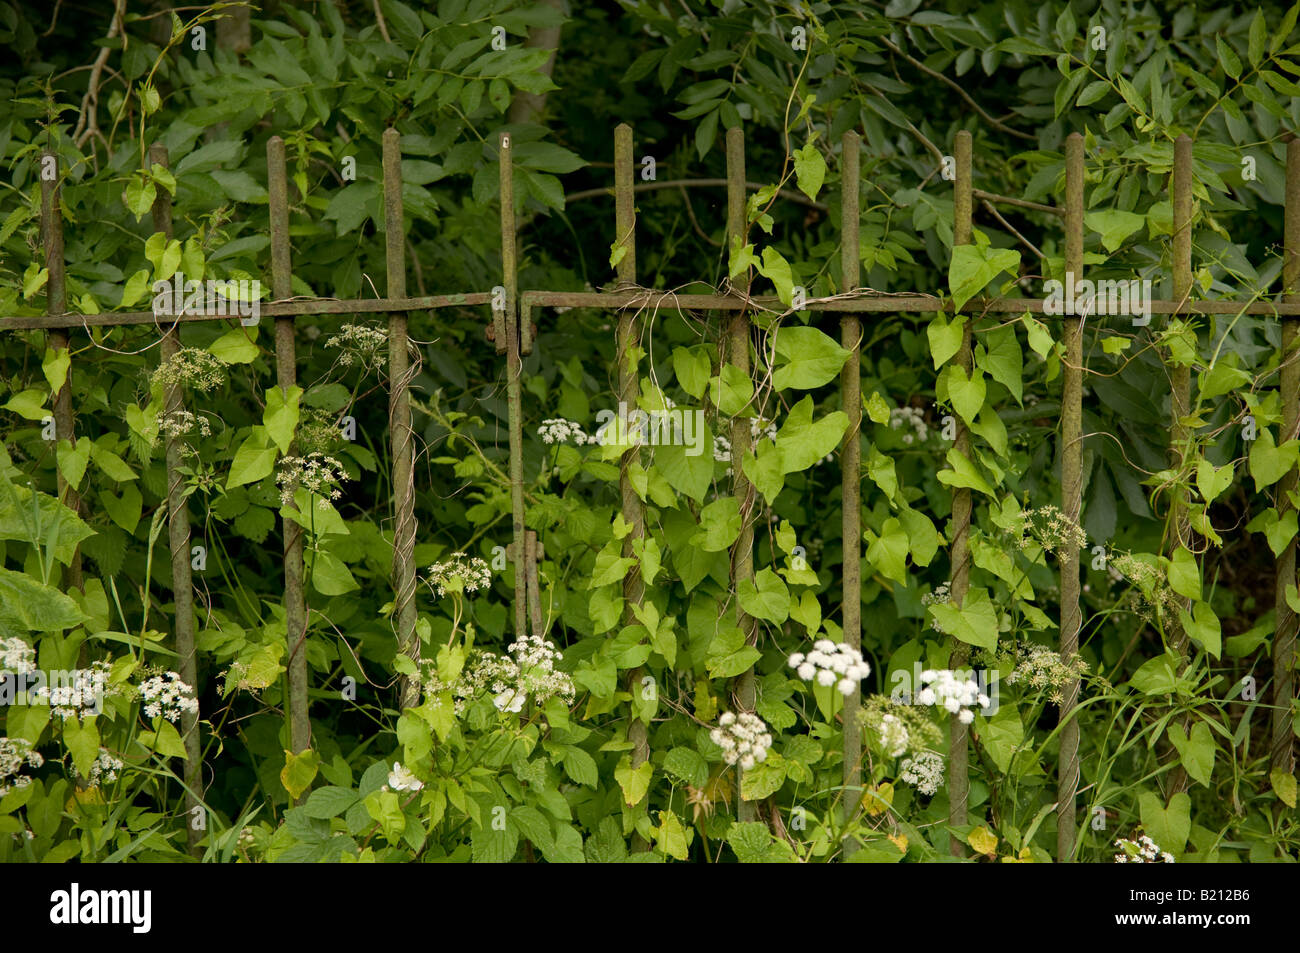 rusty green cast or wrought iron metal railings overgrown with weeds and vines being reclaimed by nature - Stock Image